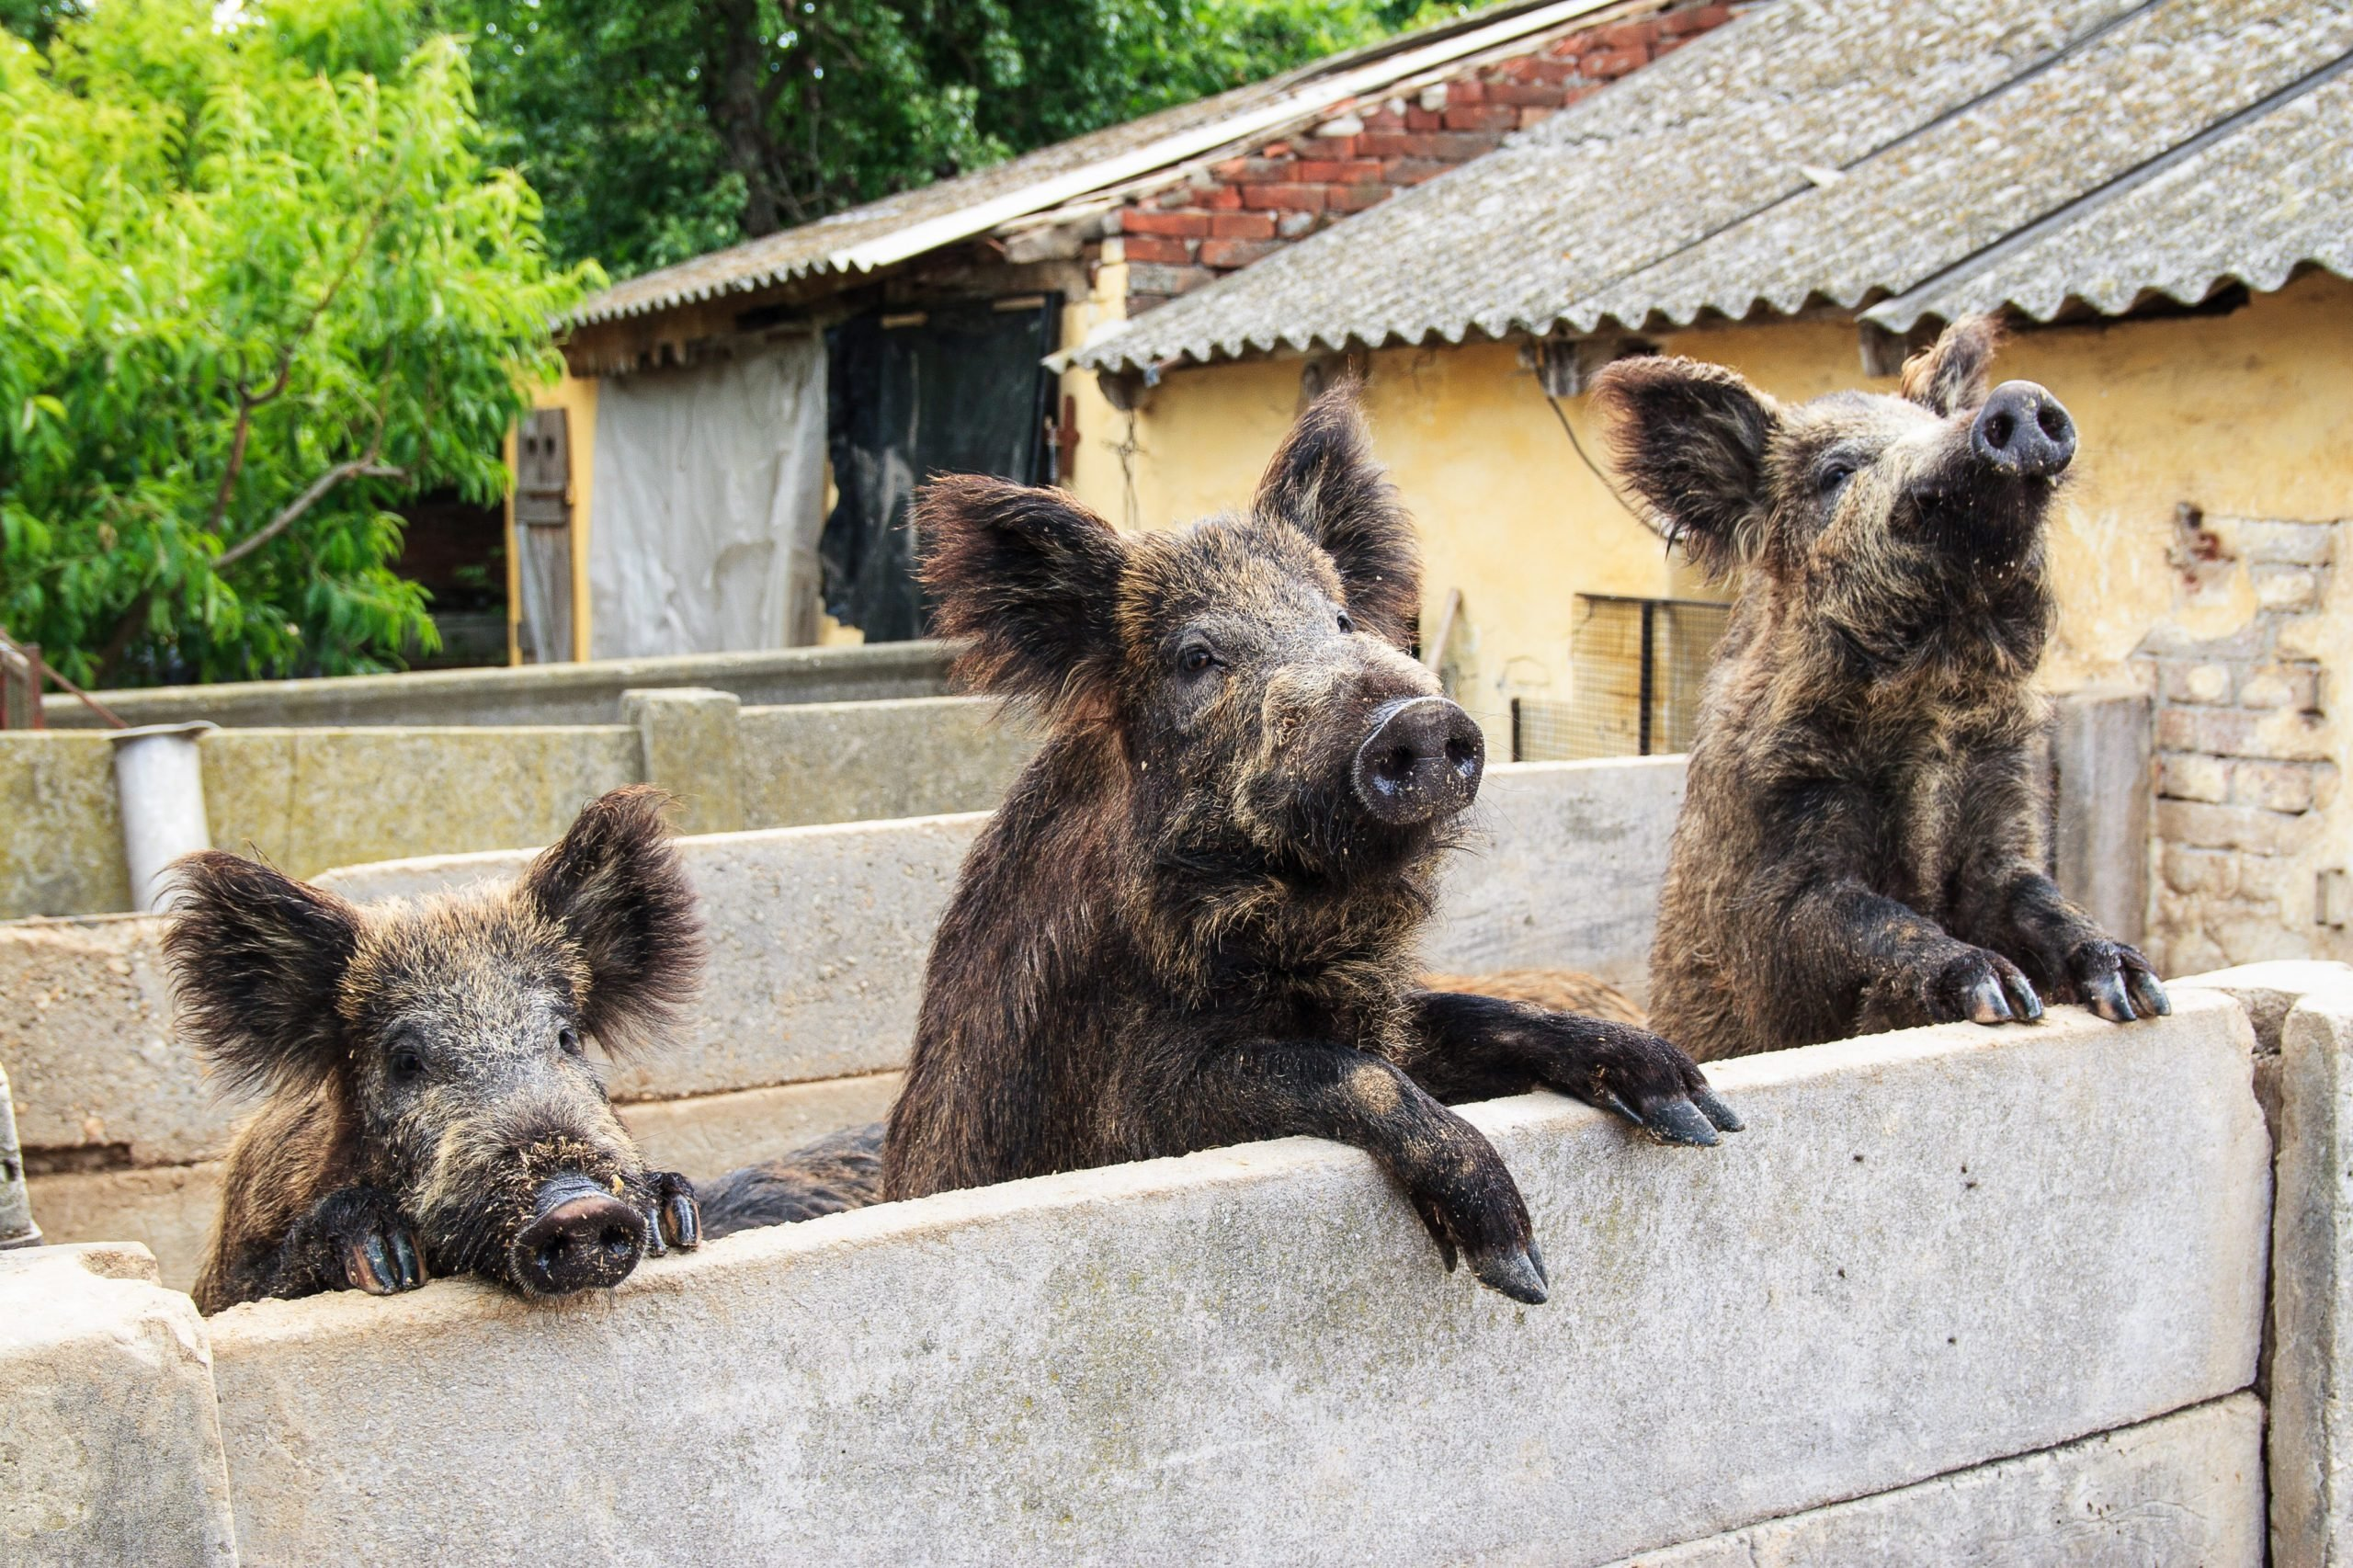 Three brown pigs looking over a fence